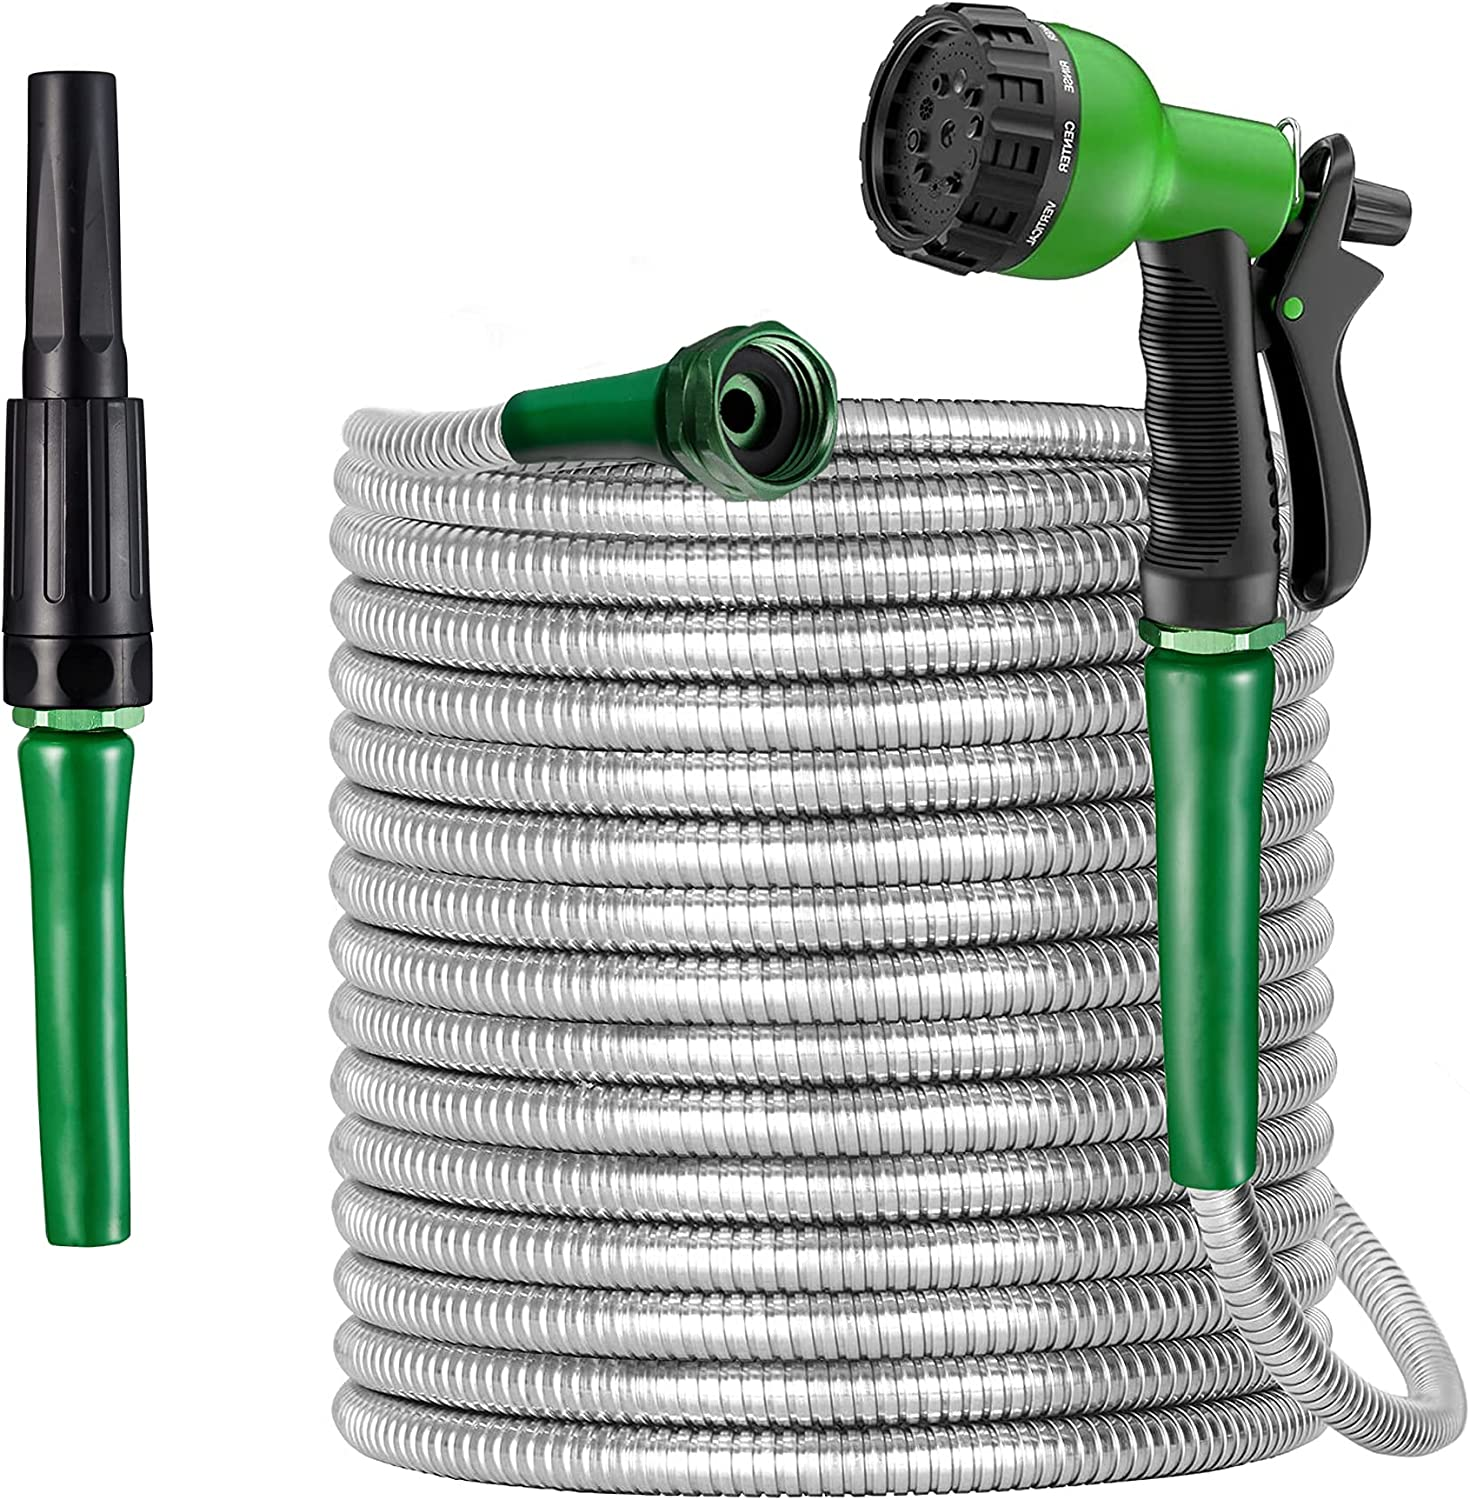 DeDebrly Garden Hose 50 ft, Flexible 5/8-in Heavy-Duty Kink-Free Garden Hose with 2 Nozzles, Expandable Garden Hose with 10-Way Sprayer, Tangle Free Stainless Steel Water Hose